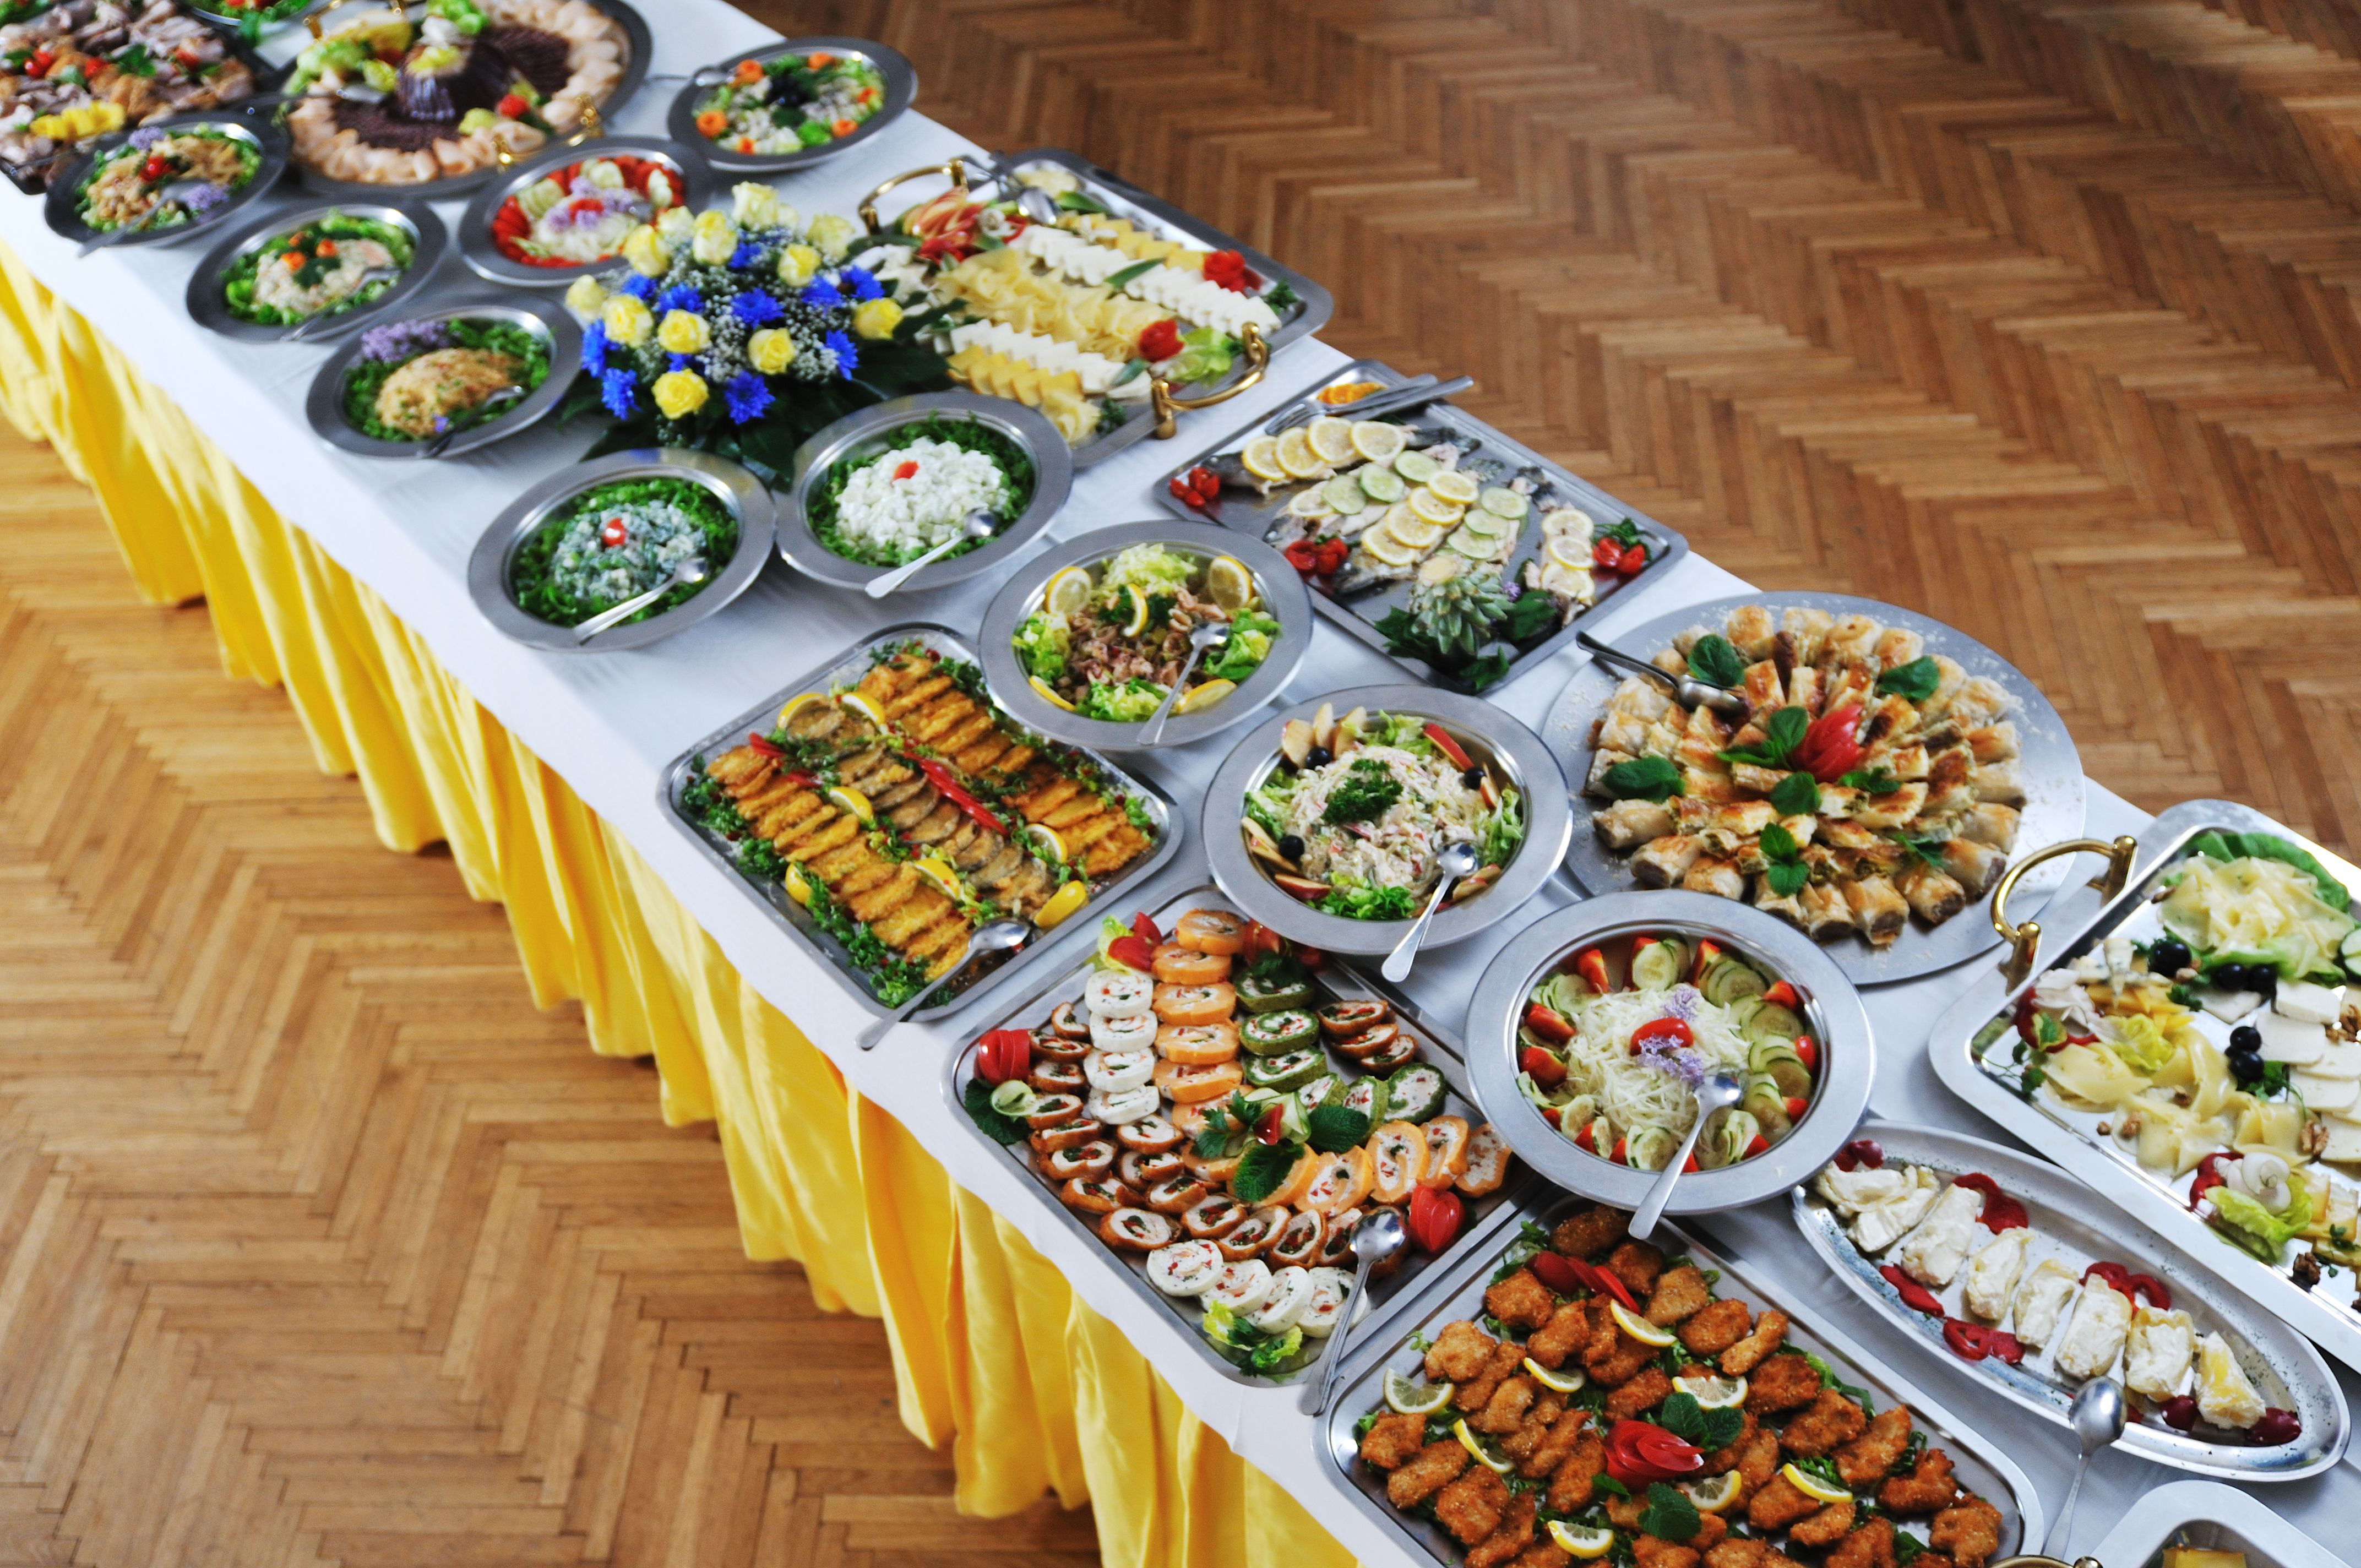 Wedding food table weddingfood weddingtips wedding food - Buffet table images ...